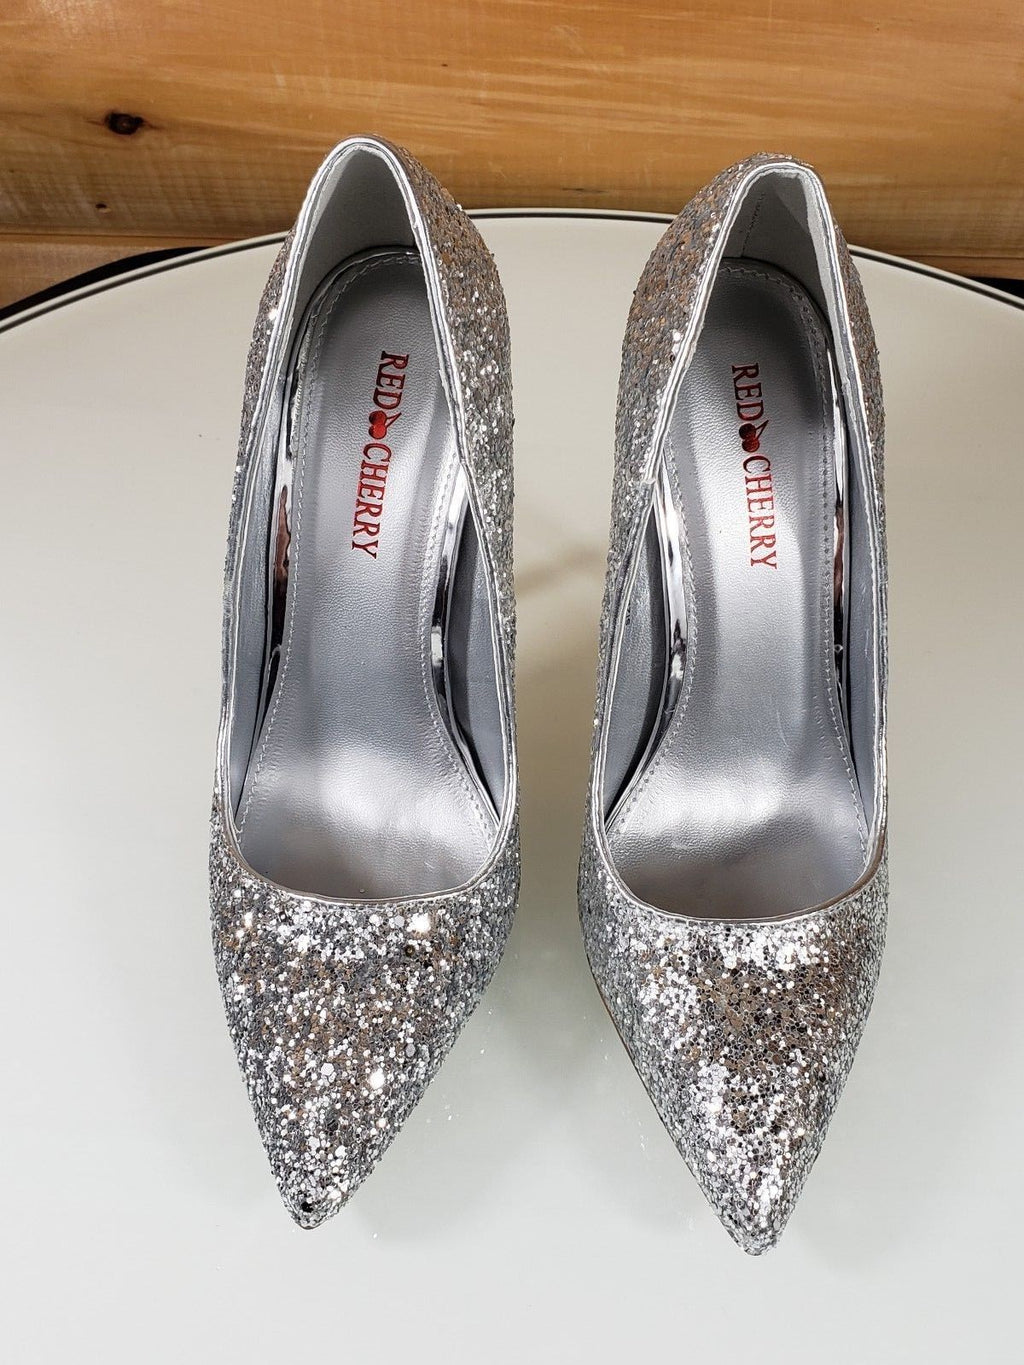 "Red Cherry Silver Glitter Pointy Toe Pump 4.5"" Stiletto High Heel Shoes"